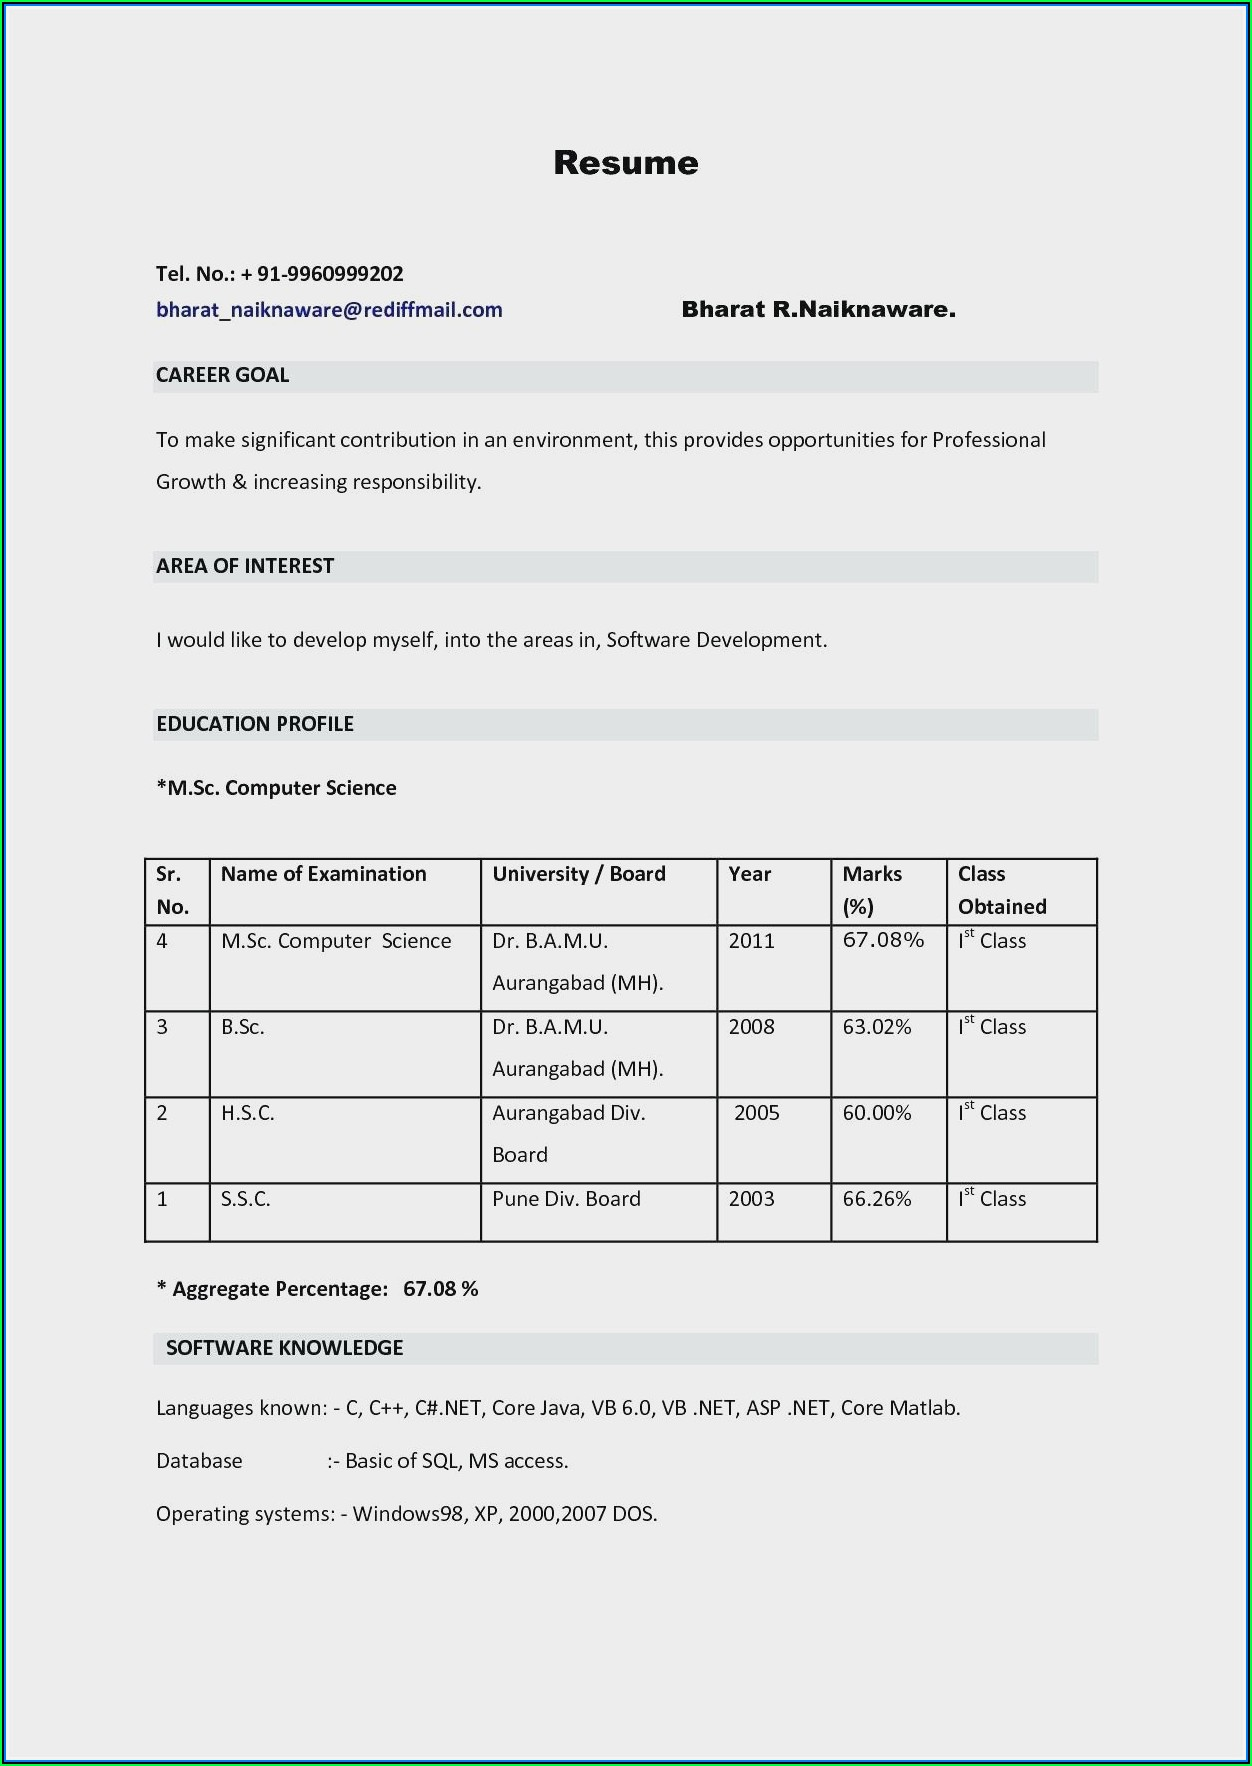 Download Free Sample Resumes For Freshers